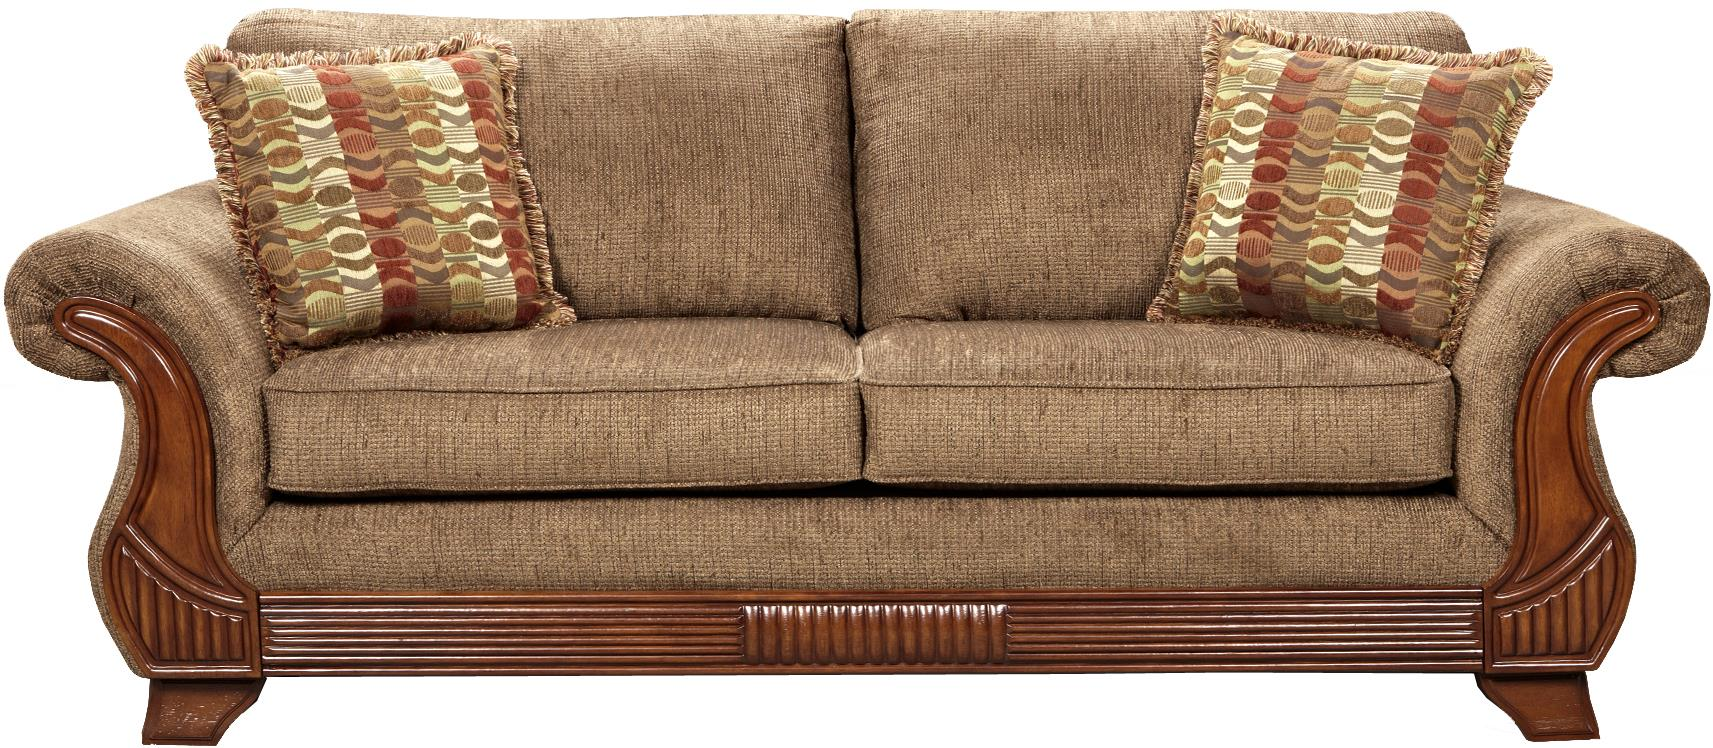 Traditional sofa bordeux traditional sofa collection thesofa for Affordable furniture number